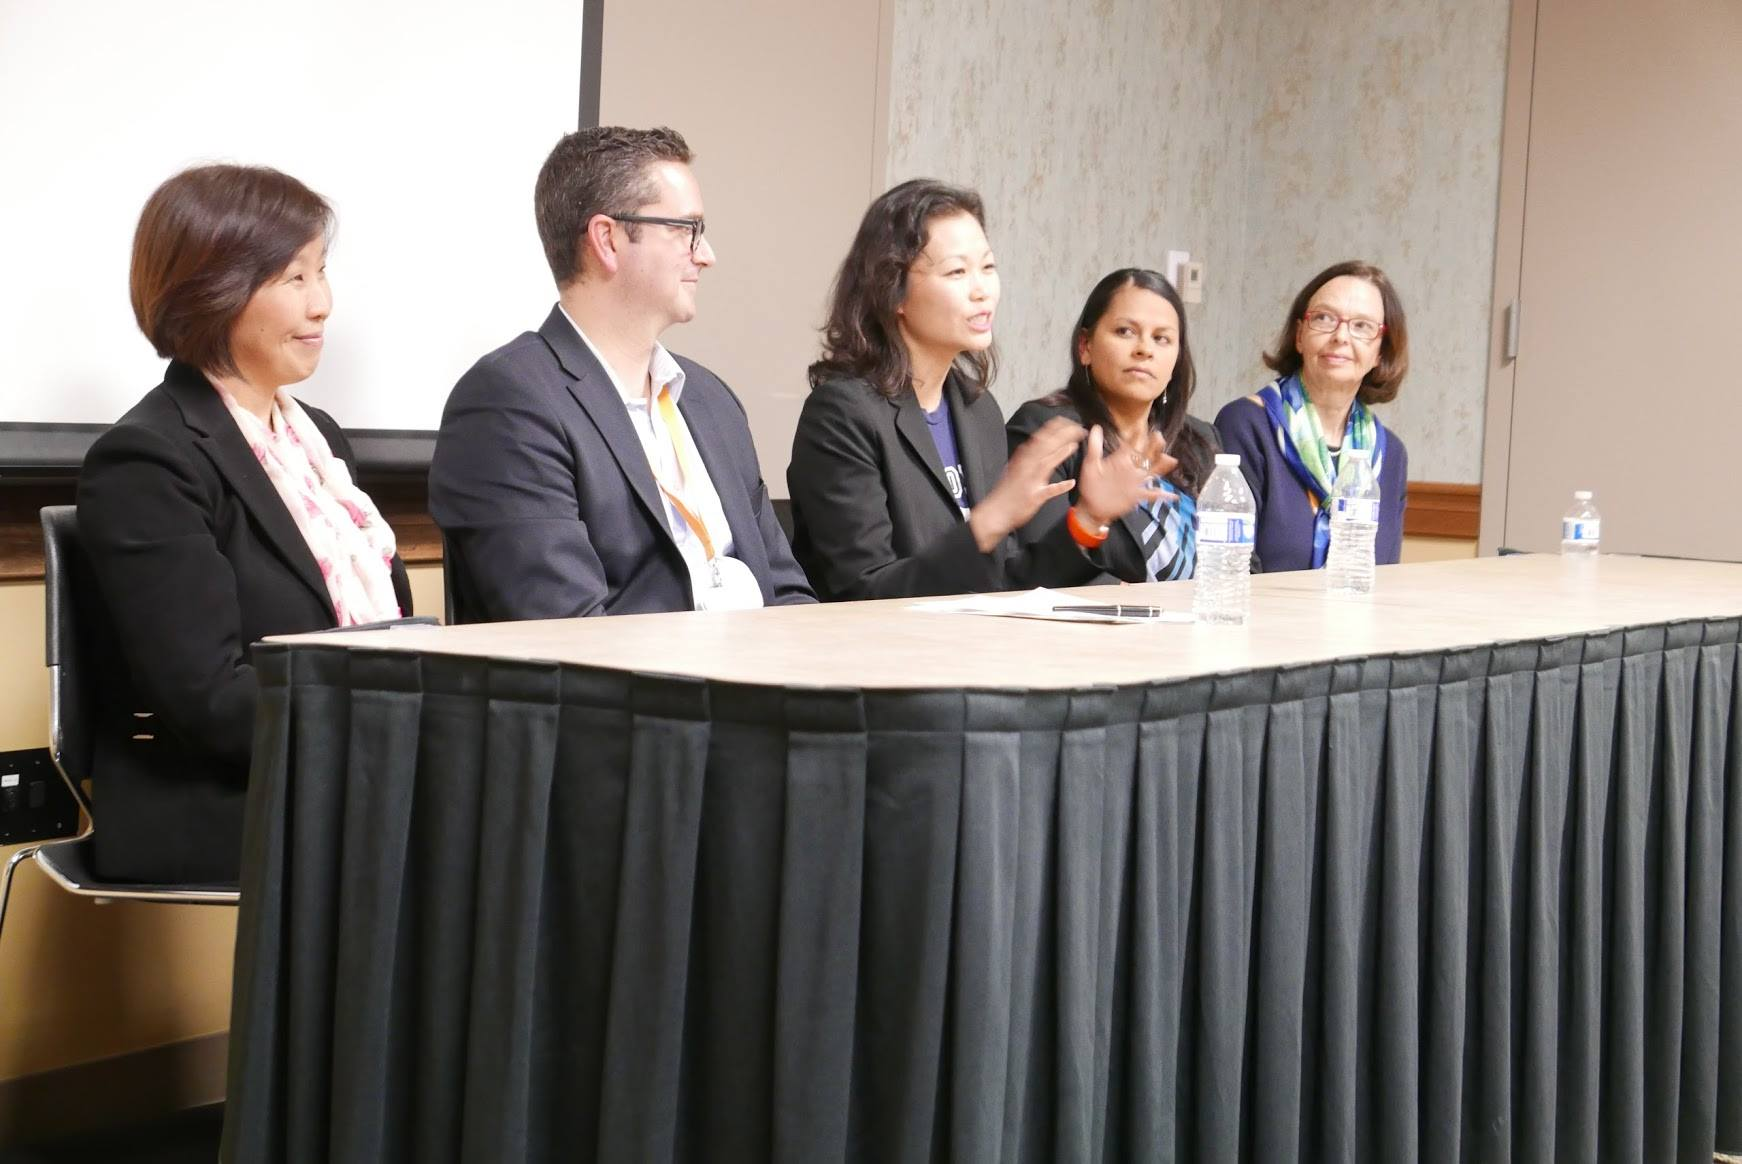 Speaking on bilingualism panel at the Orange County private school association, 2o16.